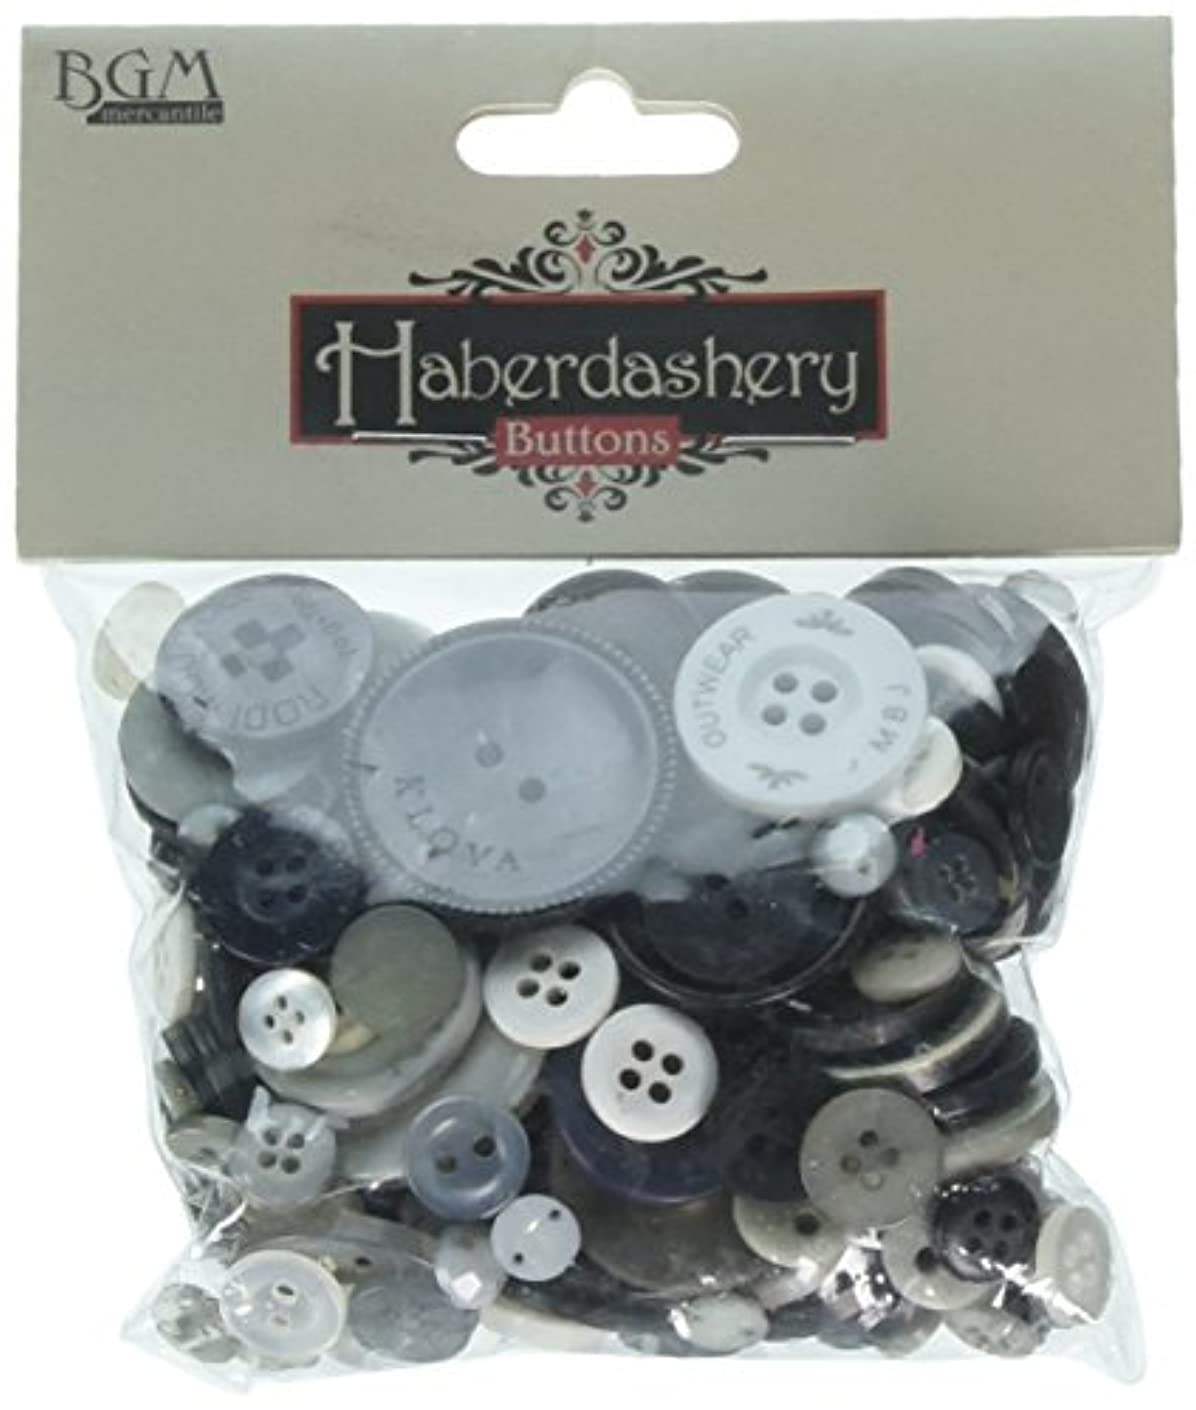 Buttons Galore Haberdashery Hand Dyed Buttons, 3.5-Ounce, Neutral Colors